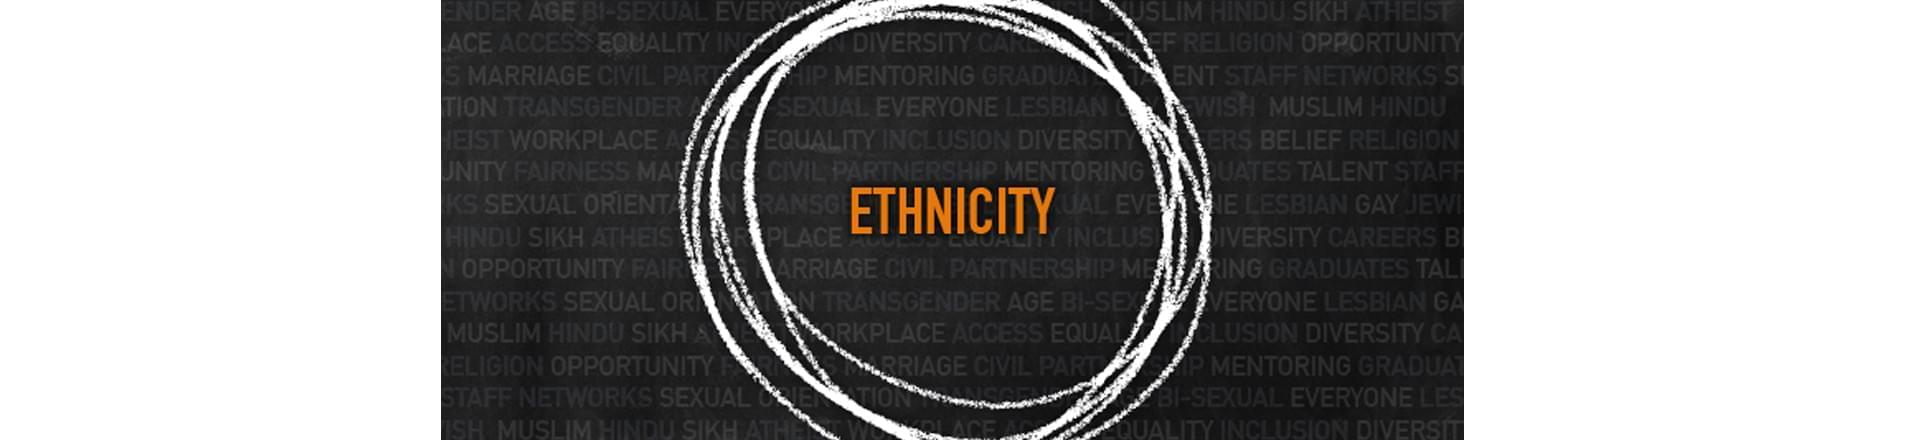 the word 'ethnicity' on a background of words about diversity and inclusion